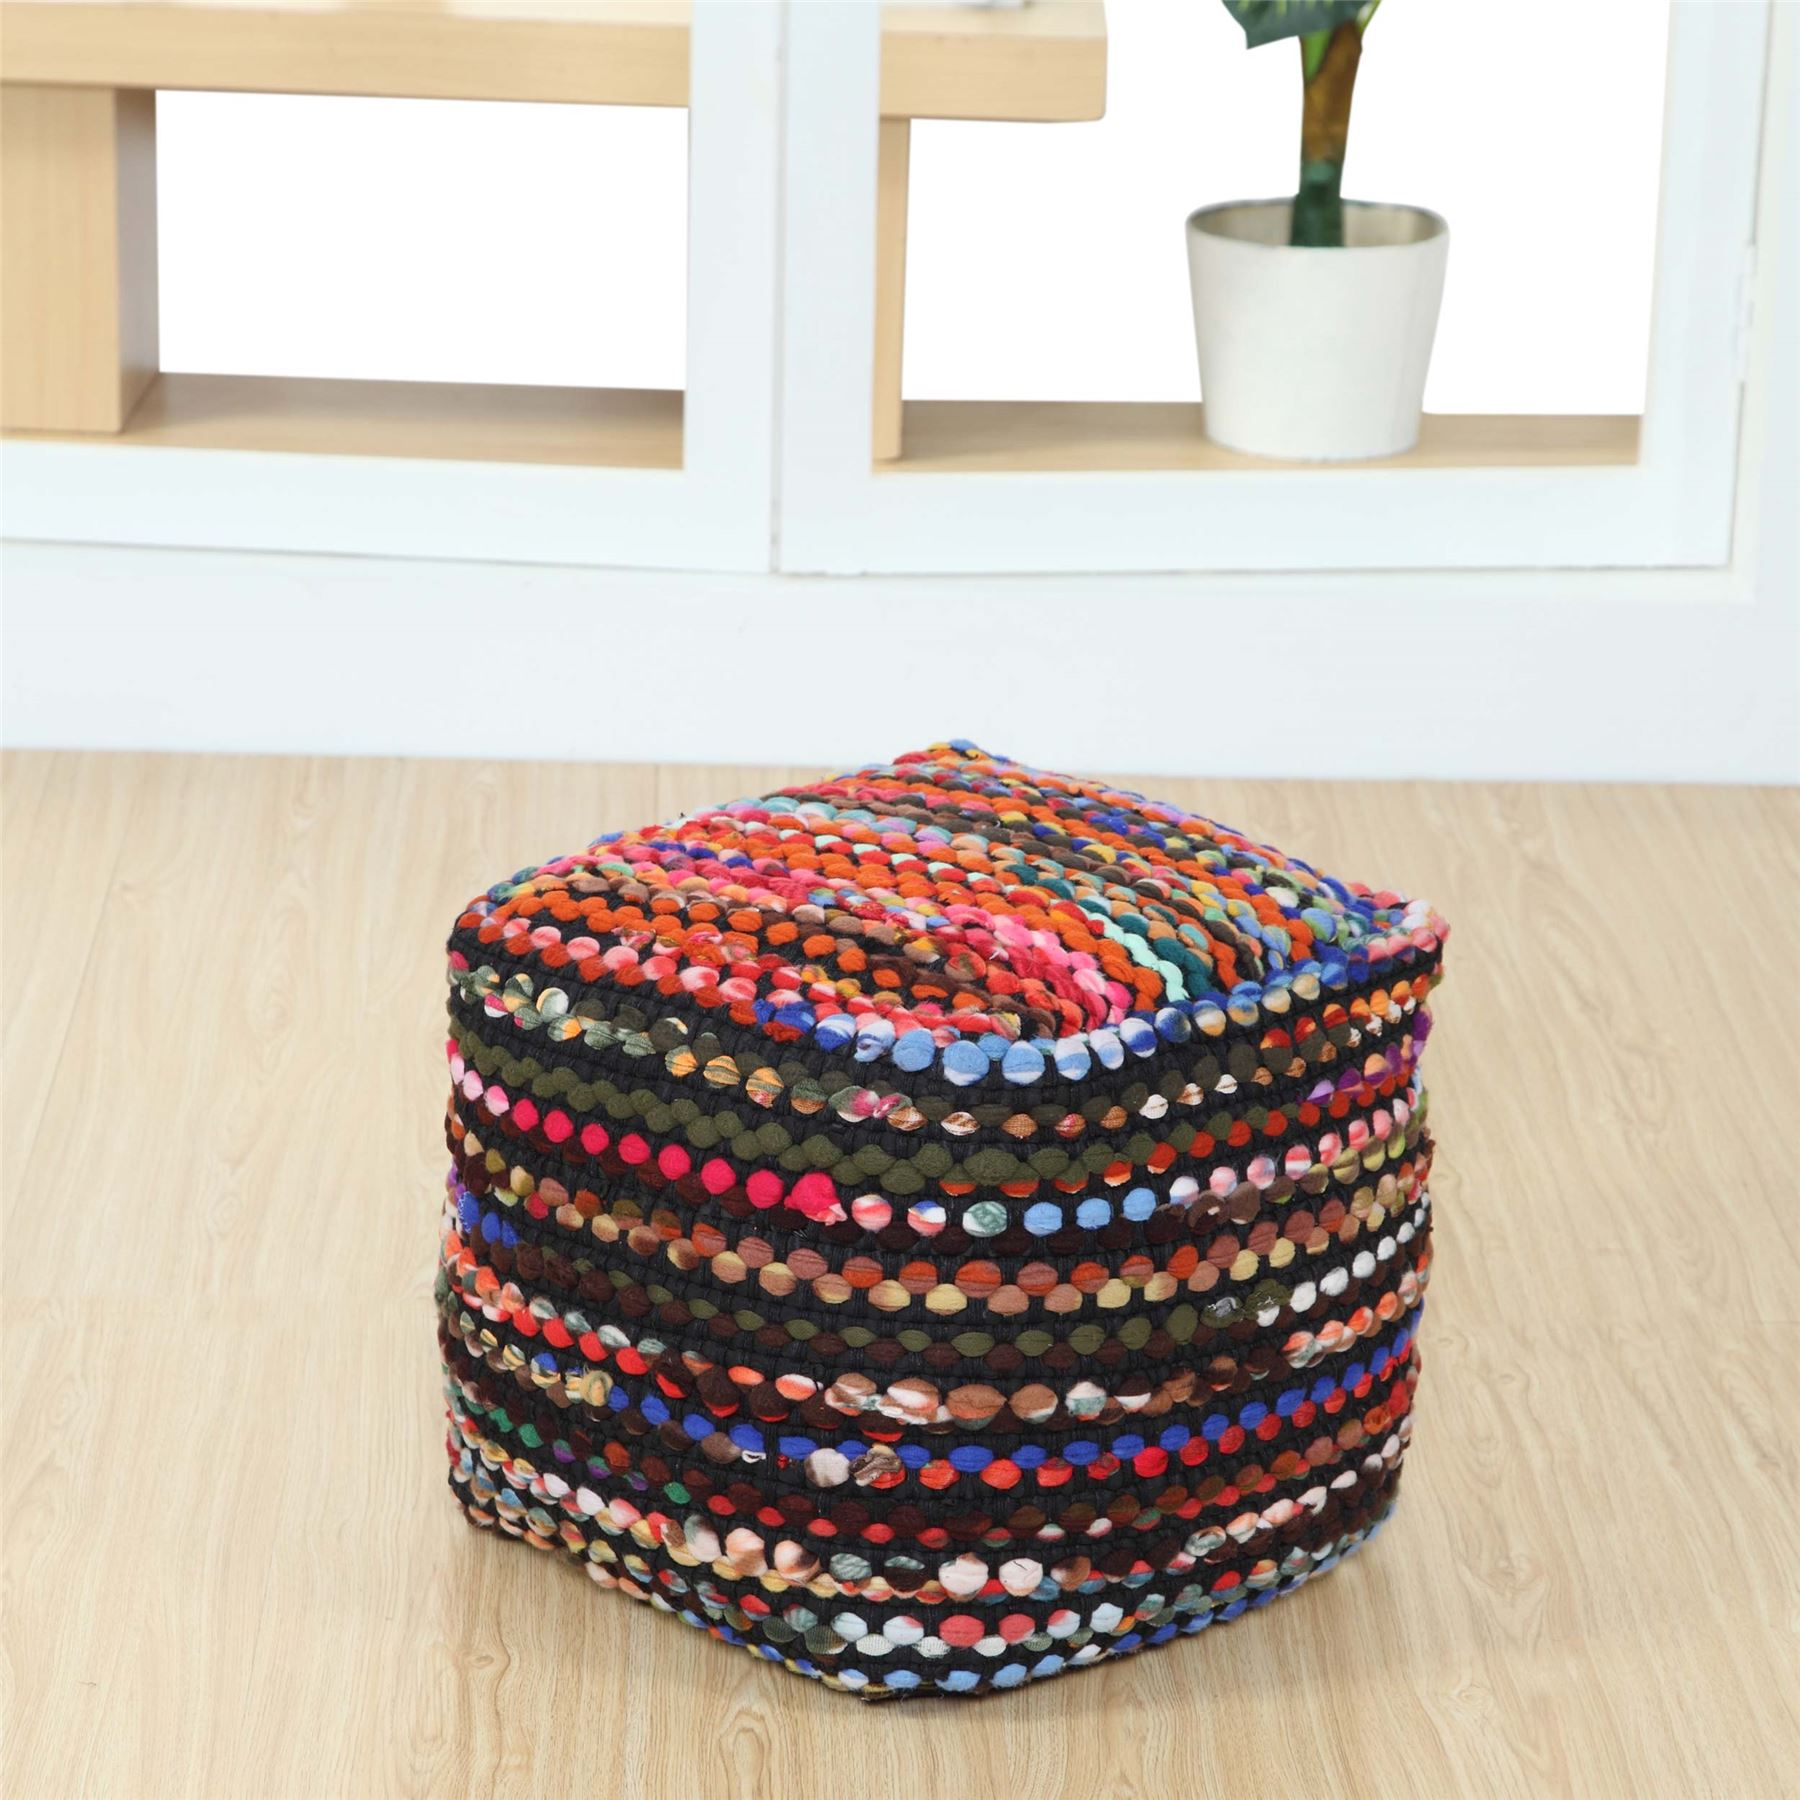 Furniture Hearty Blue Vintage Indian Patchwork Pouf Footstool Cotton Ottoman Decor Bohemian Sturdy Construction